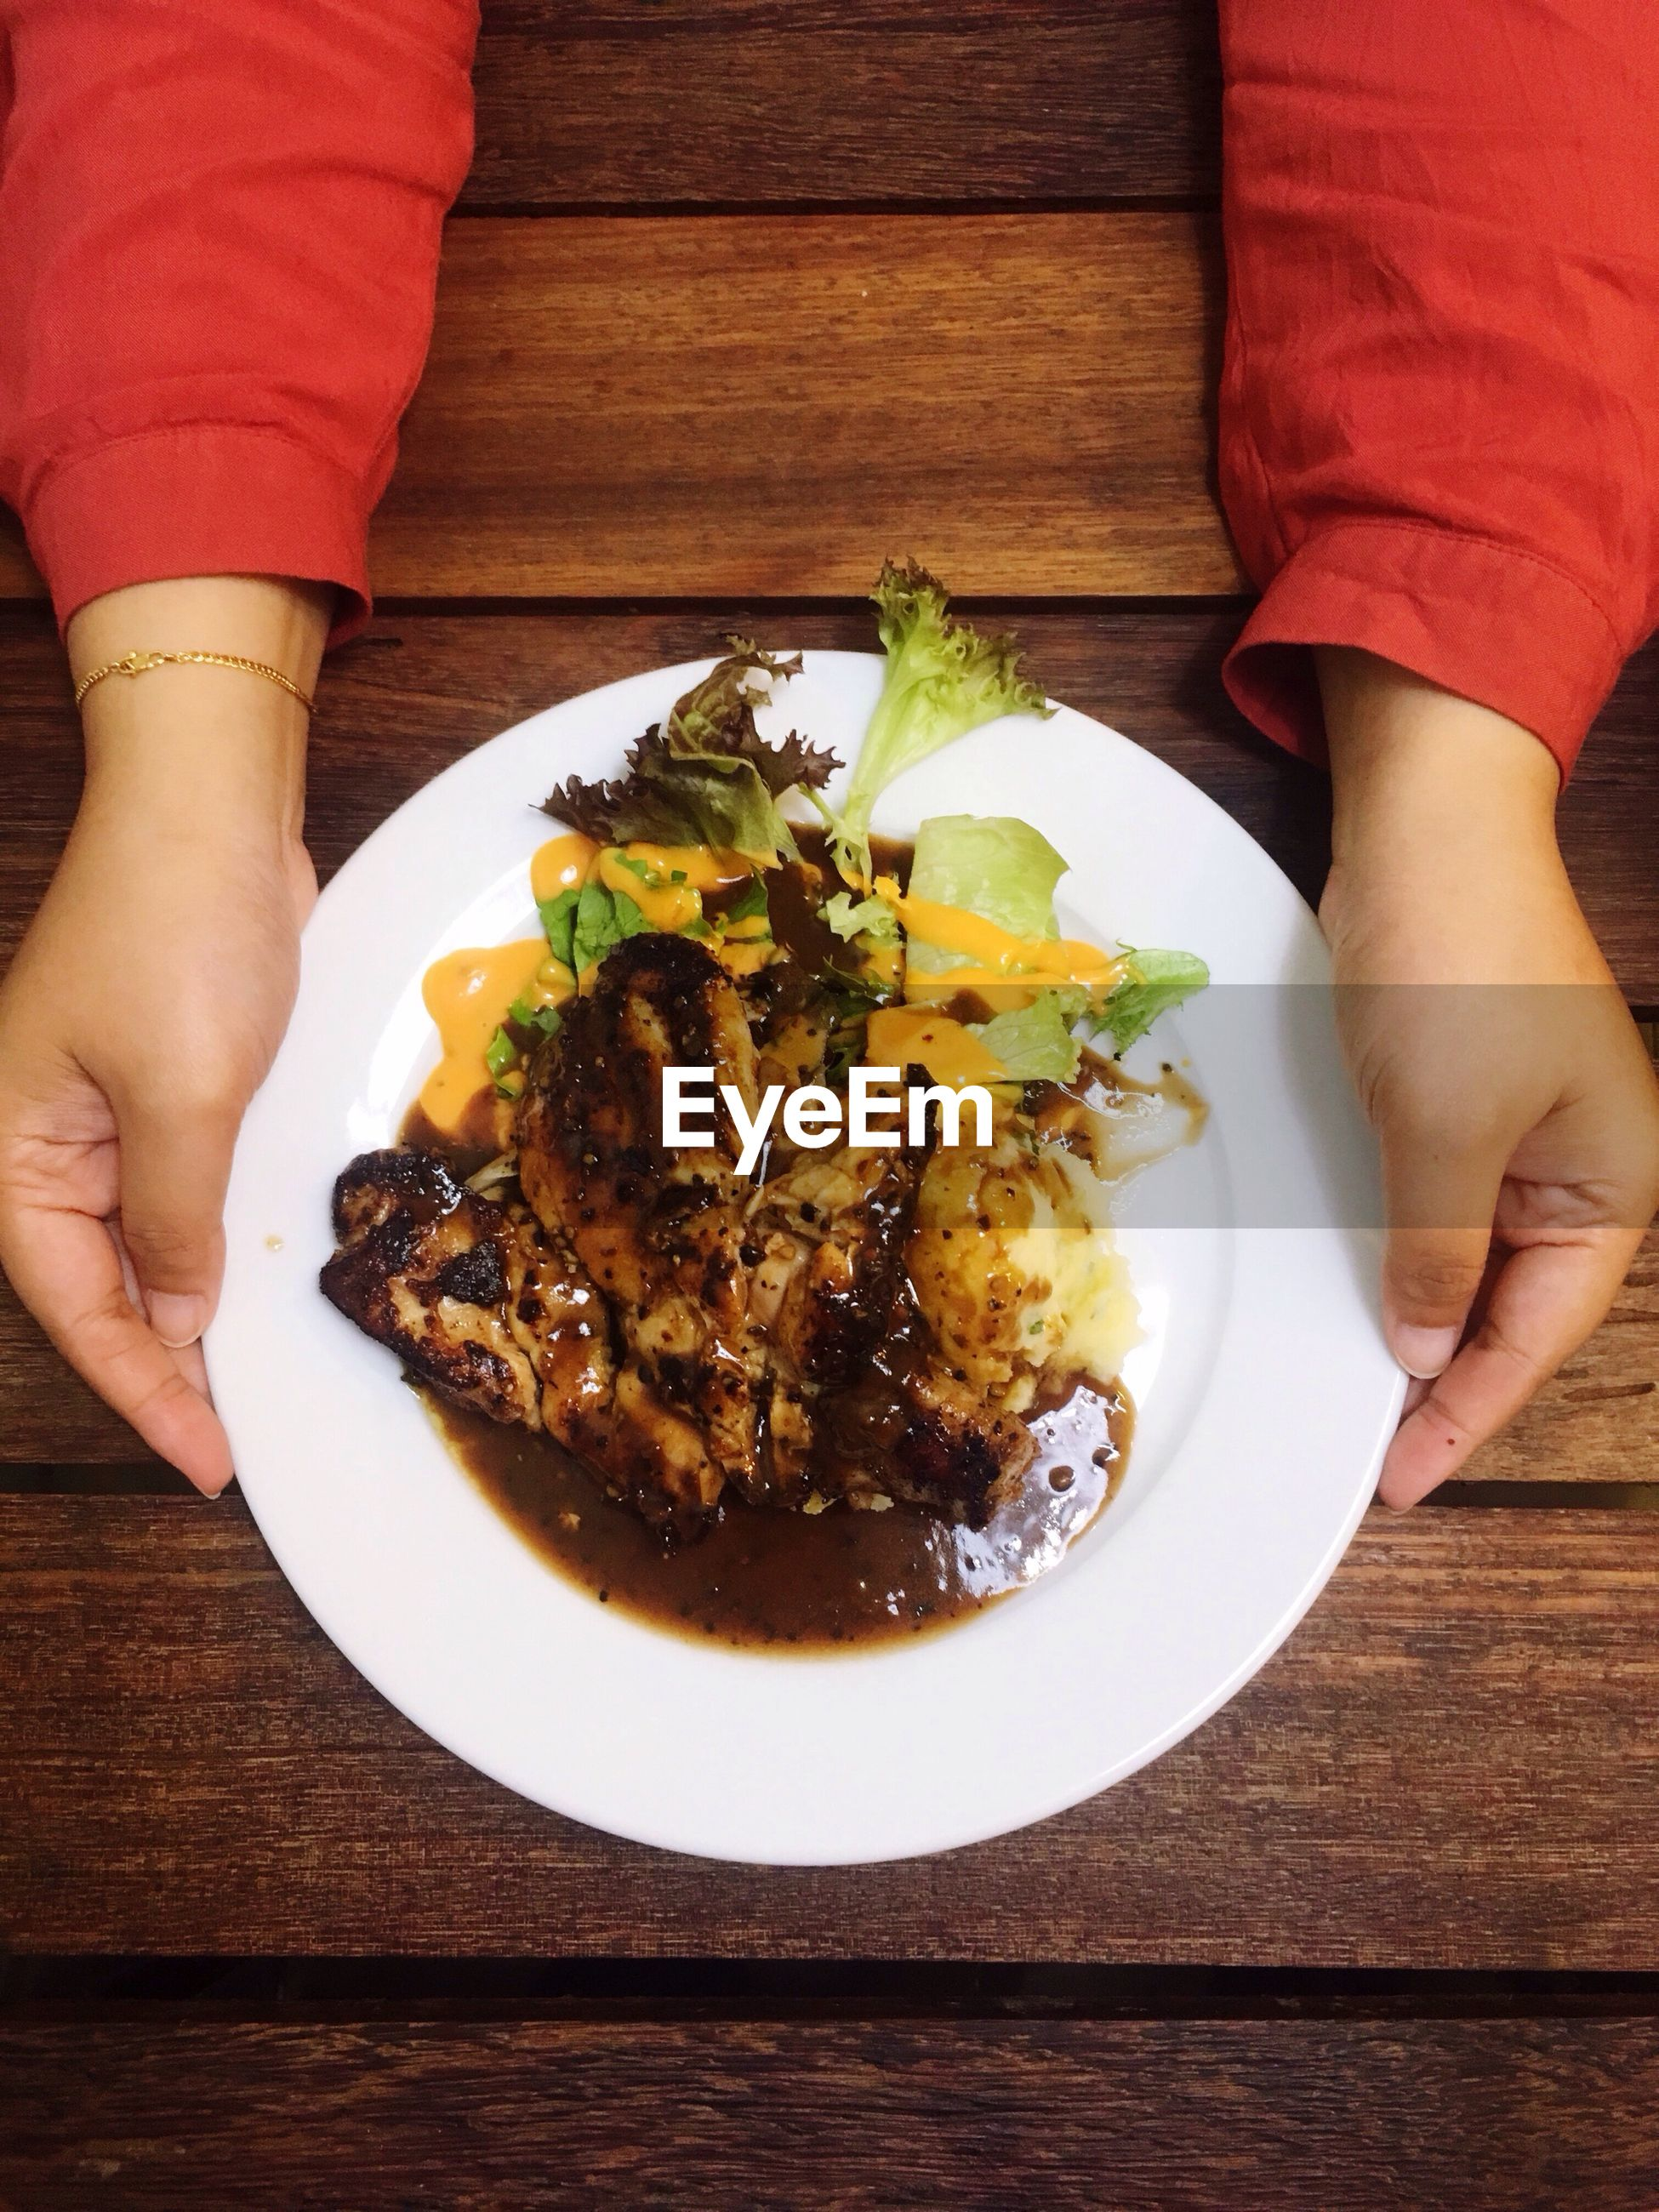 Cropped hands holding food in plate over table